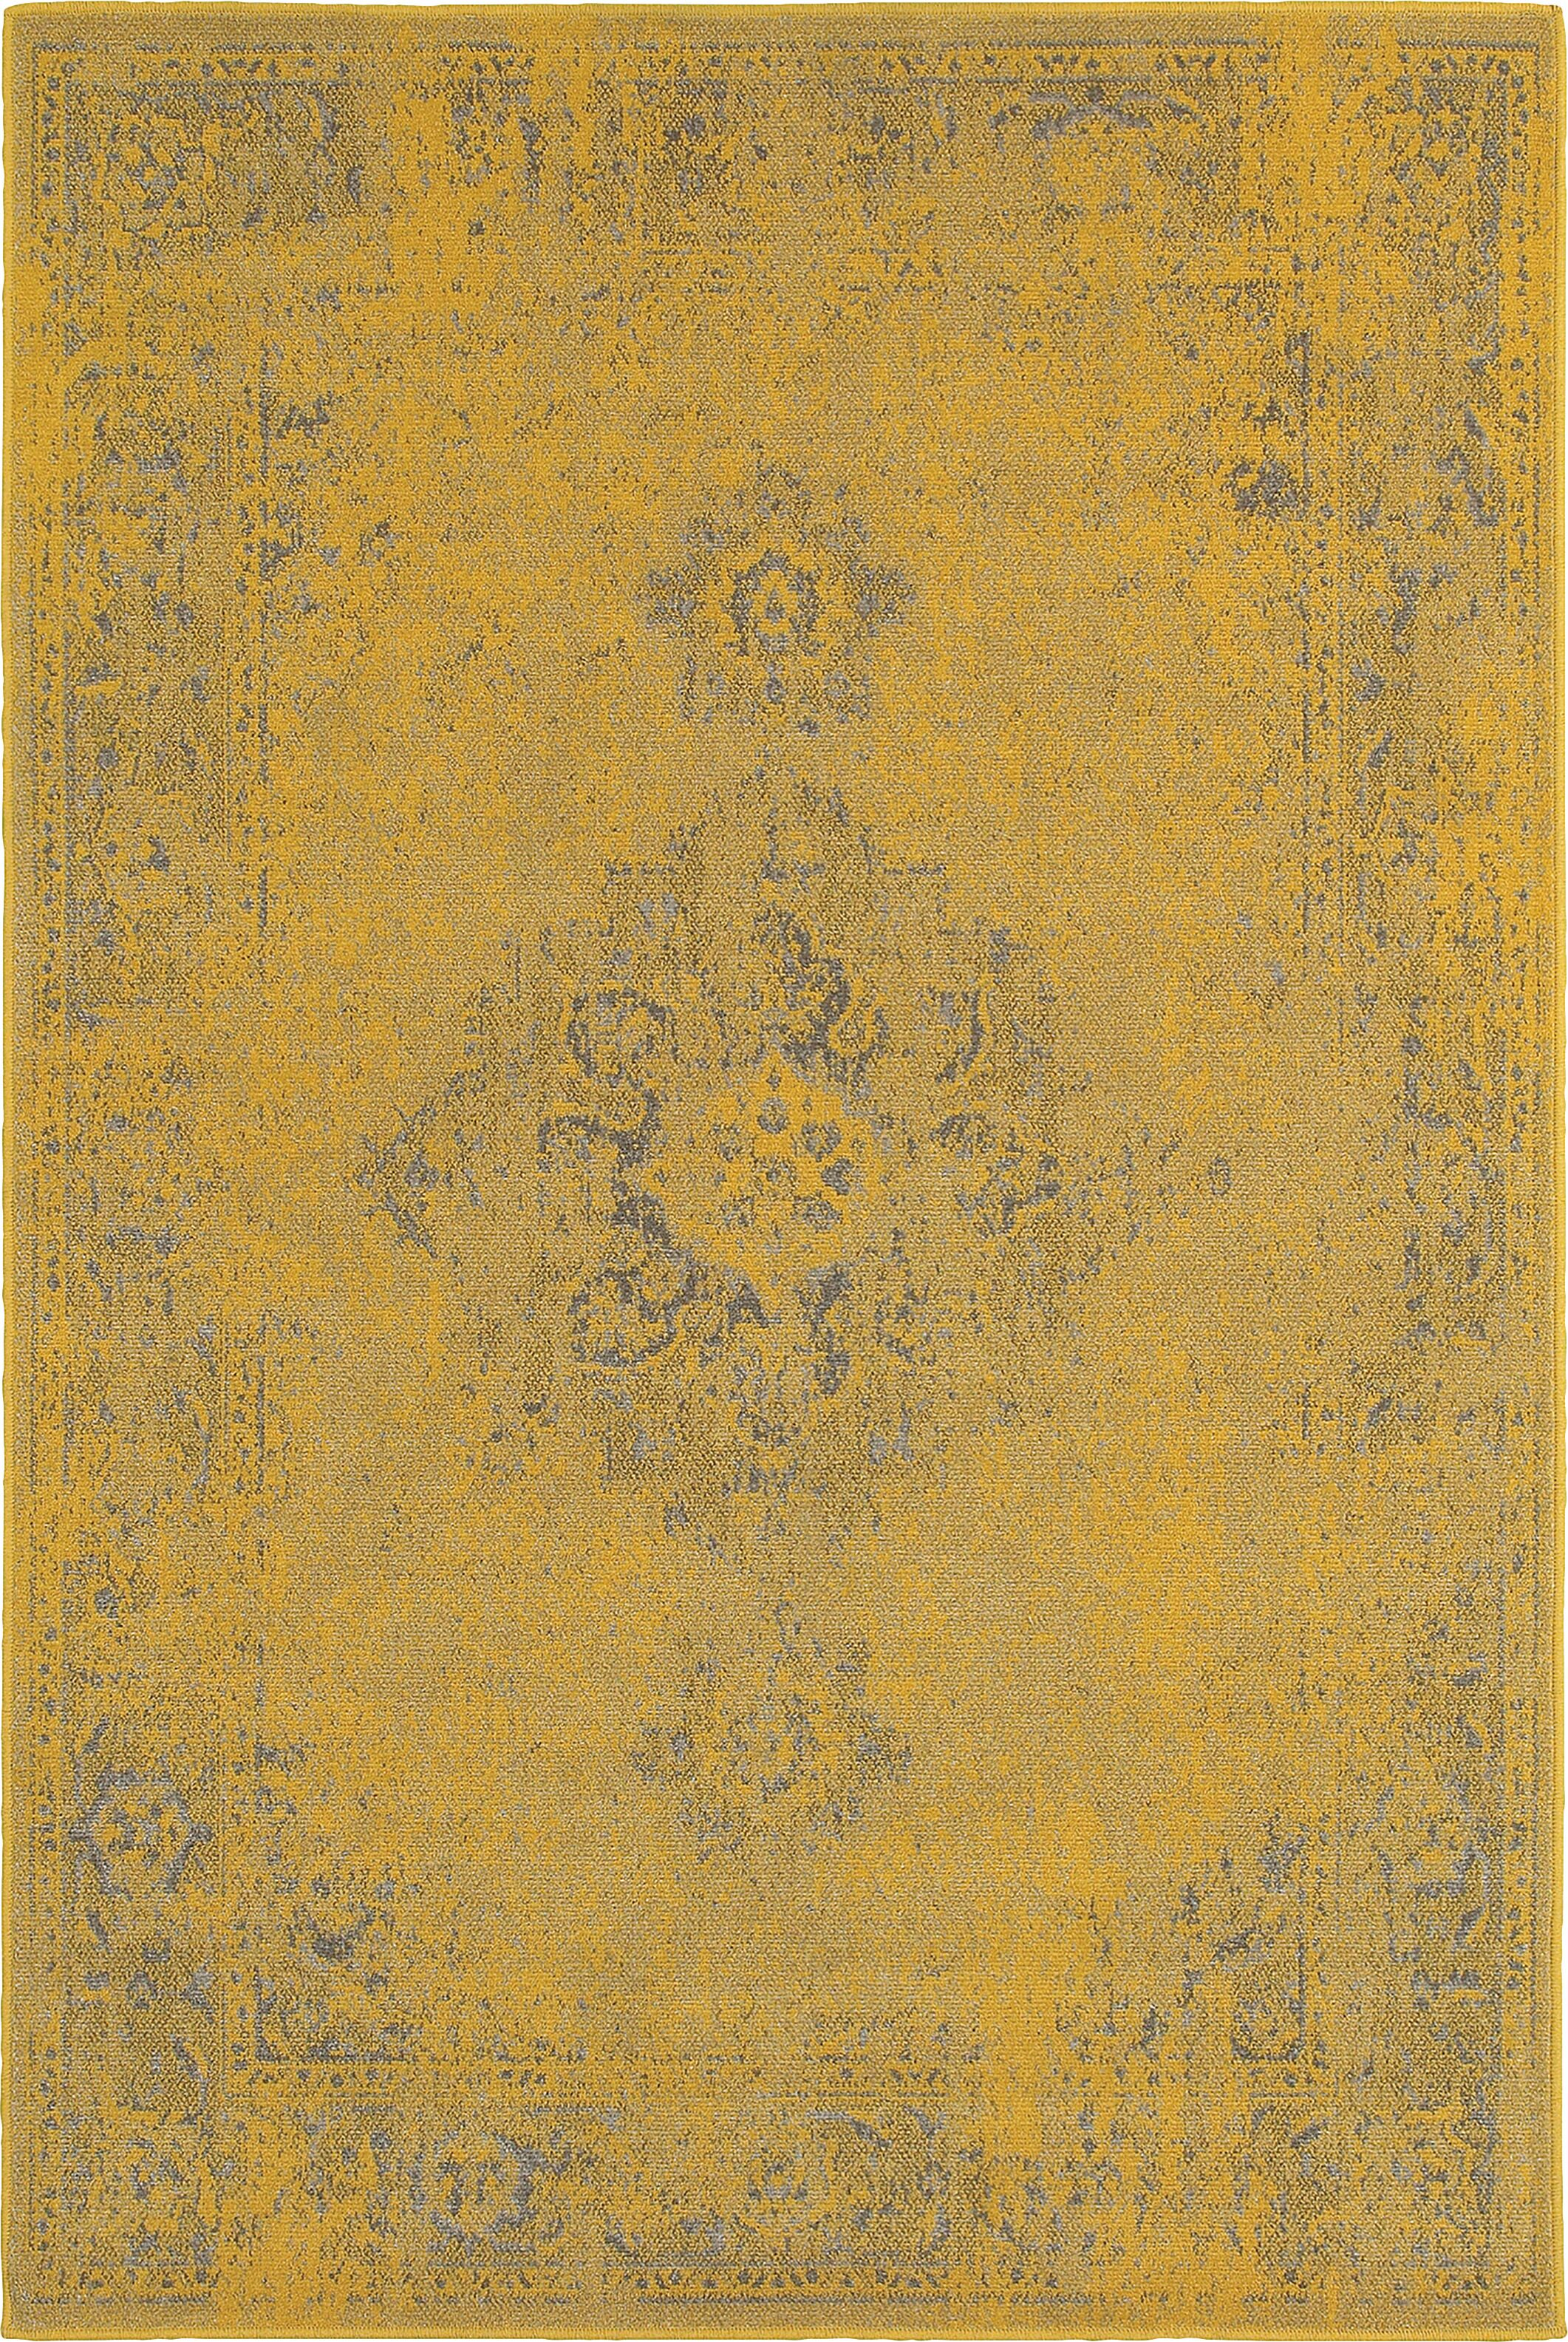 Raiden Yellow/Gray Area Rug Rug Size: Rectangle 5'3